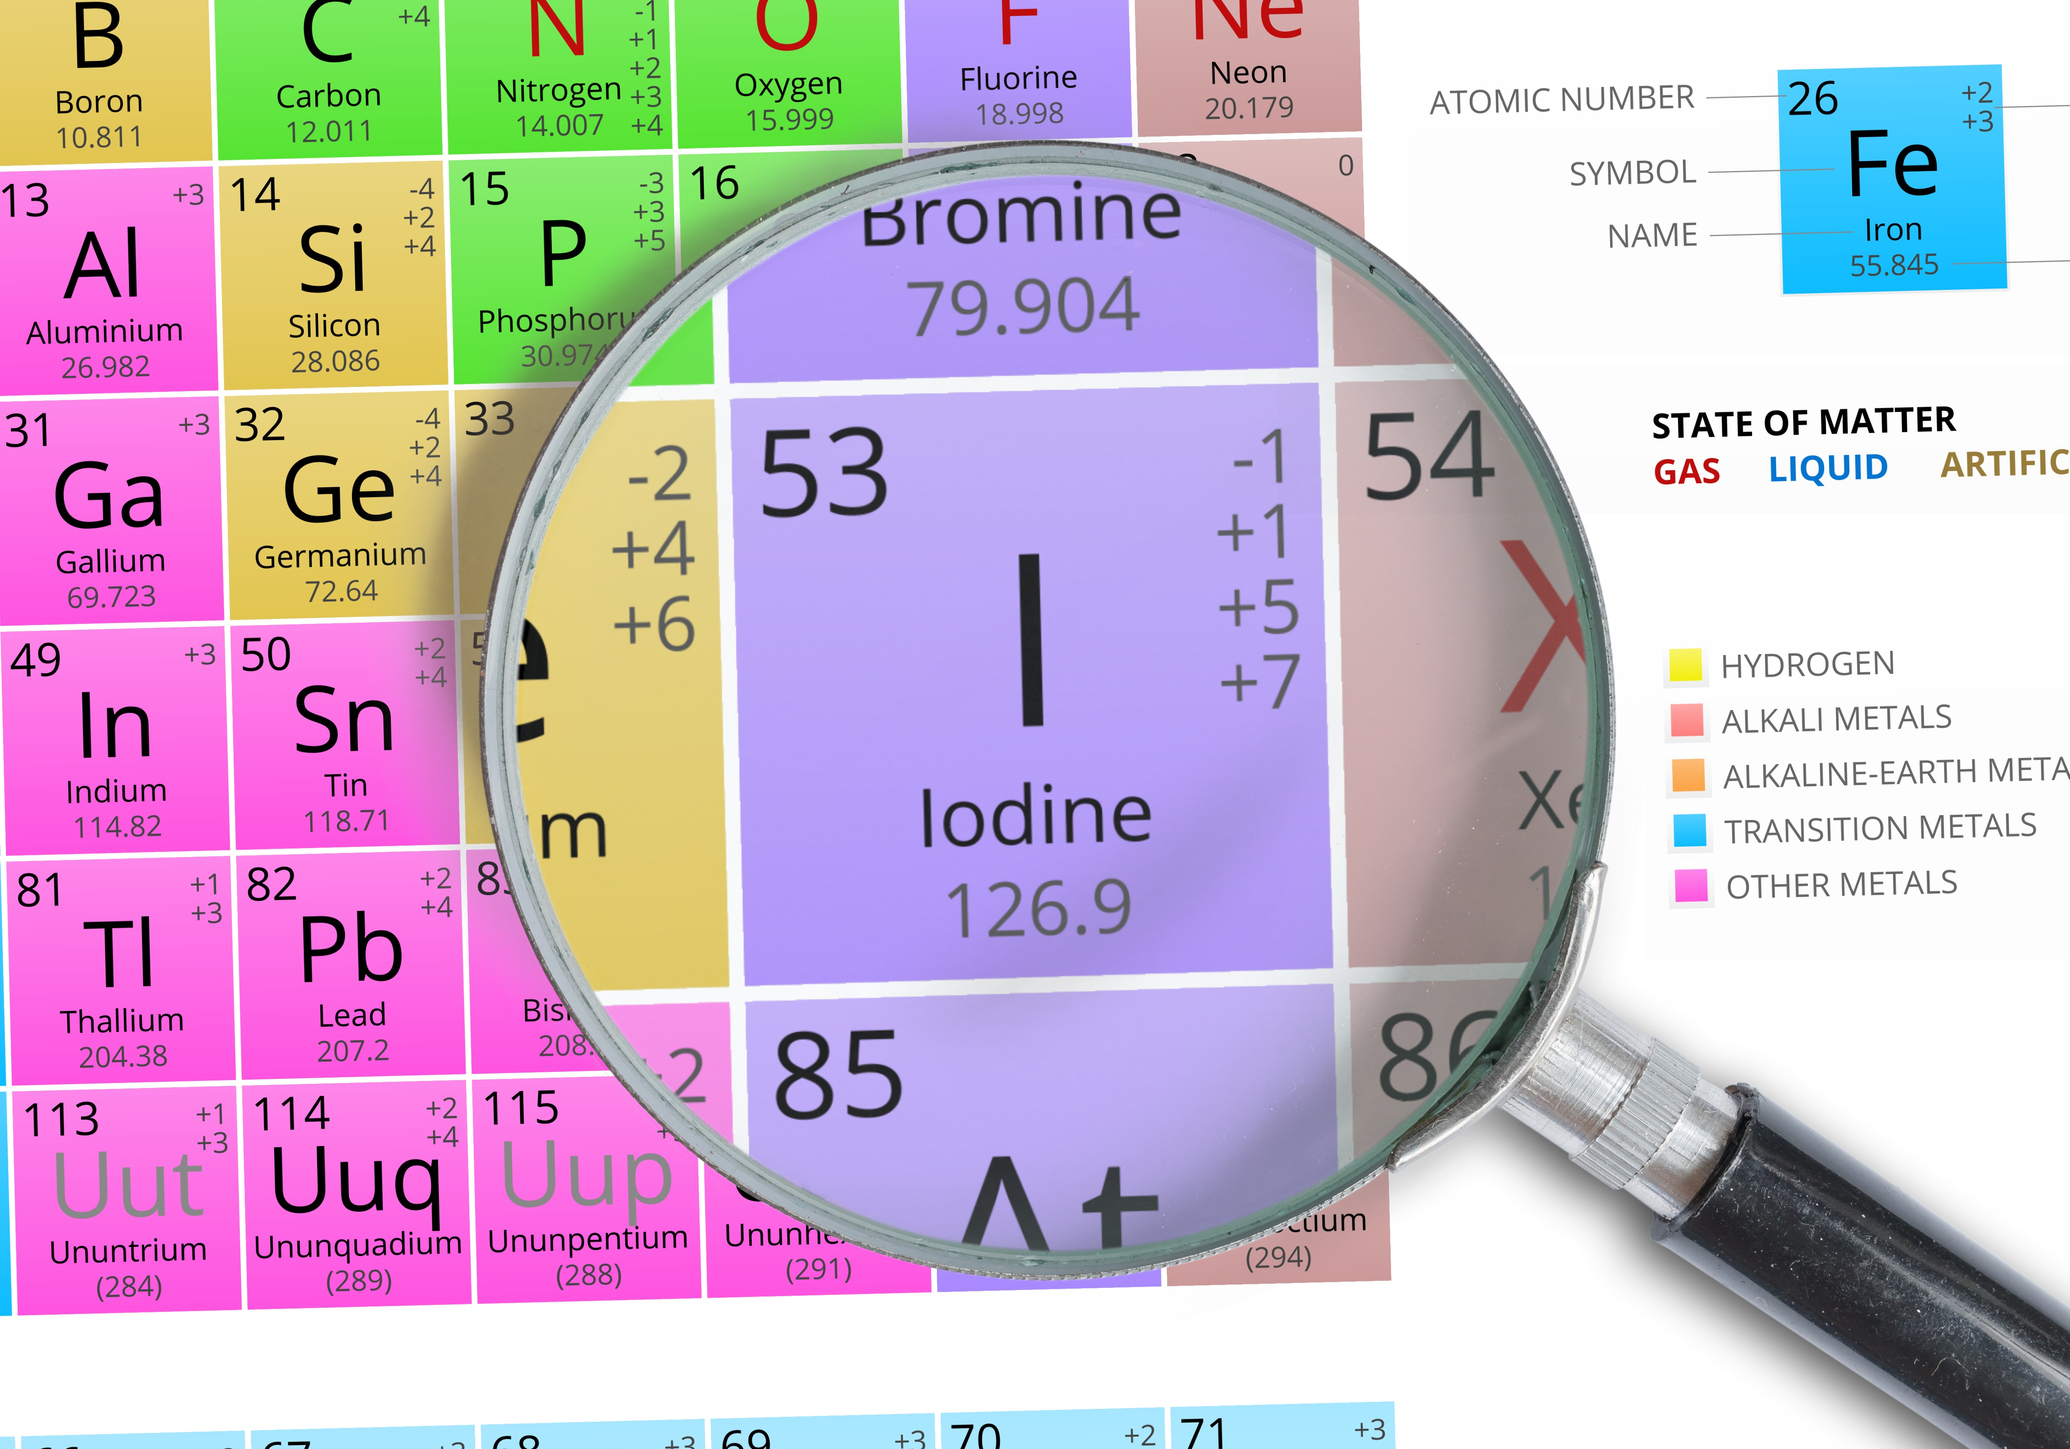 Iodine Element of Mendeleev Periodic table magnified with magnifying glass